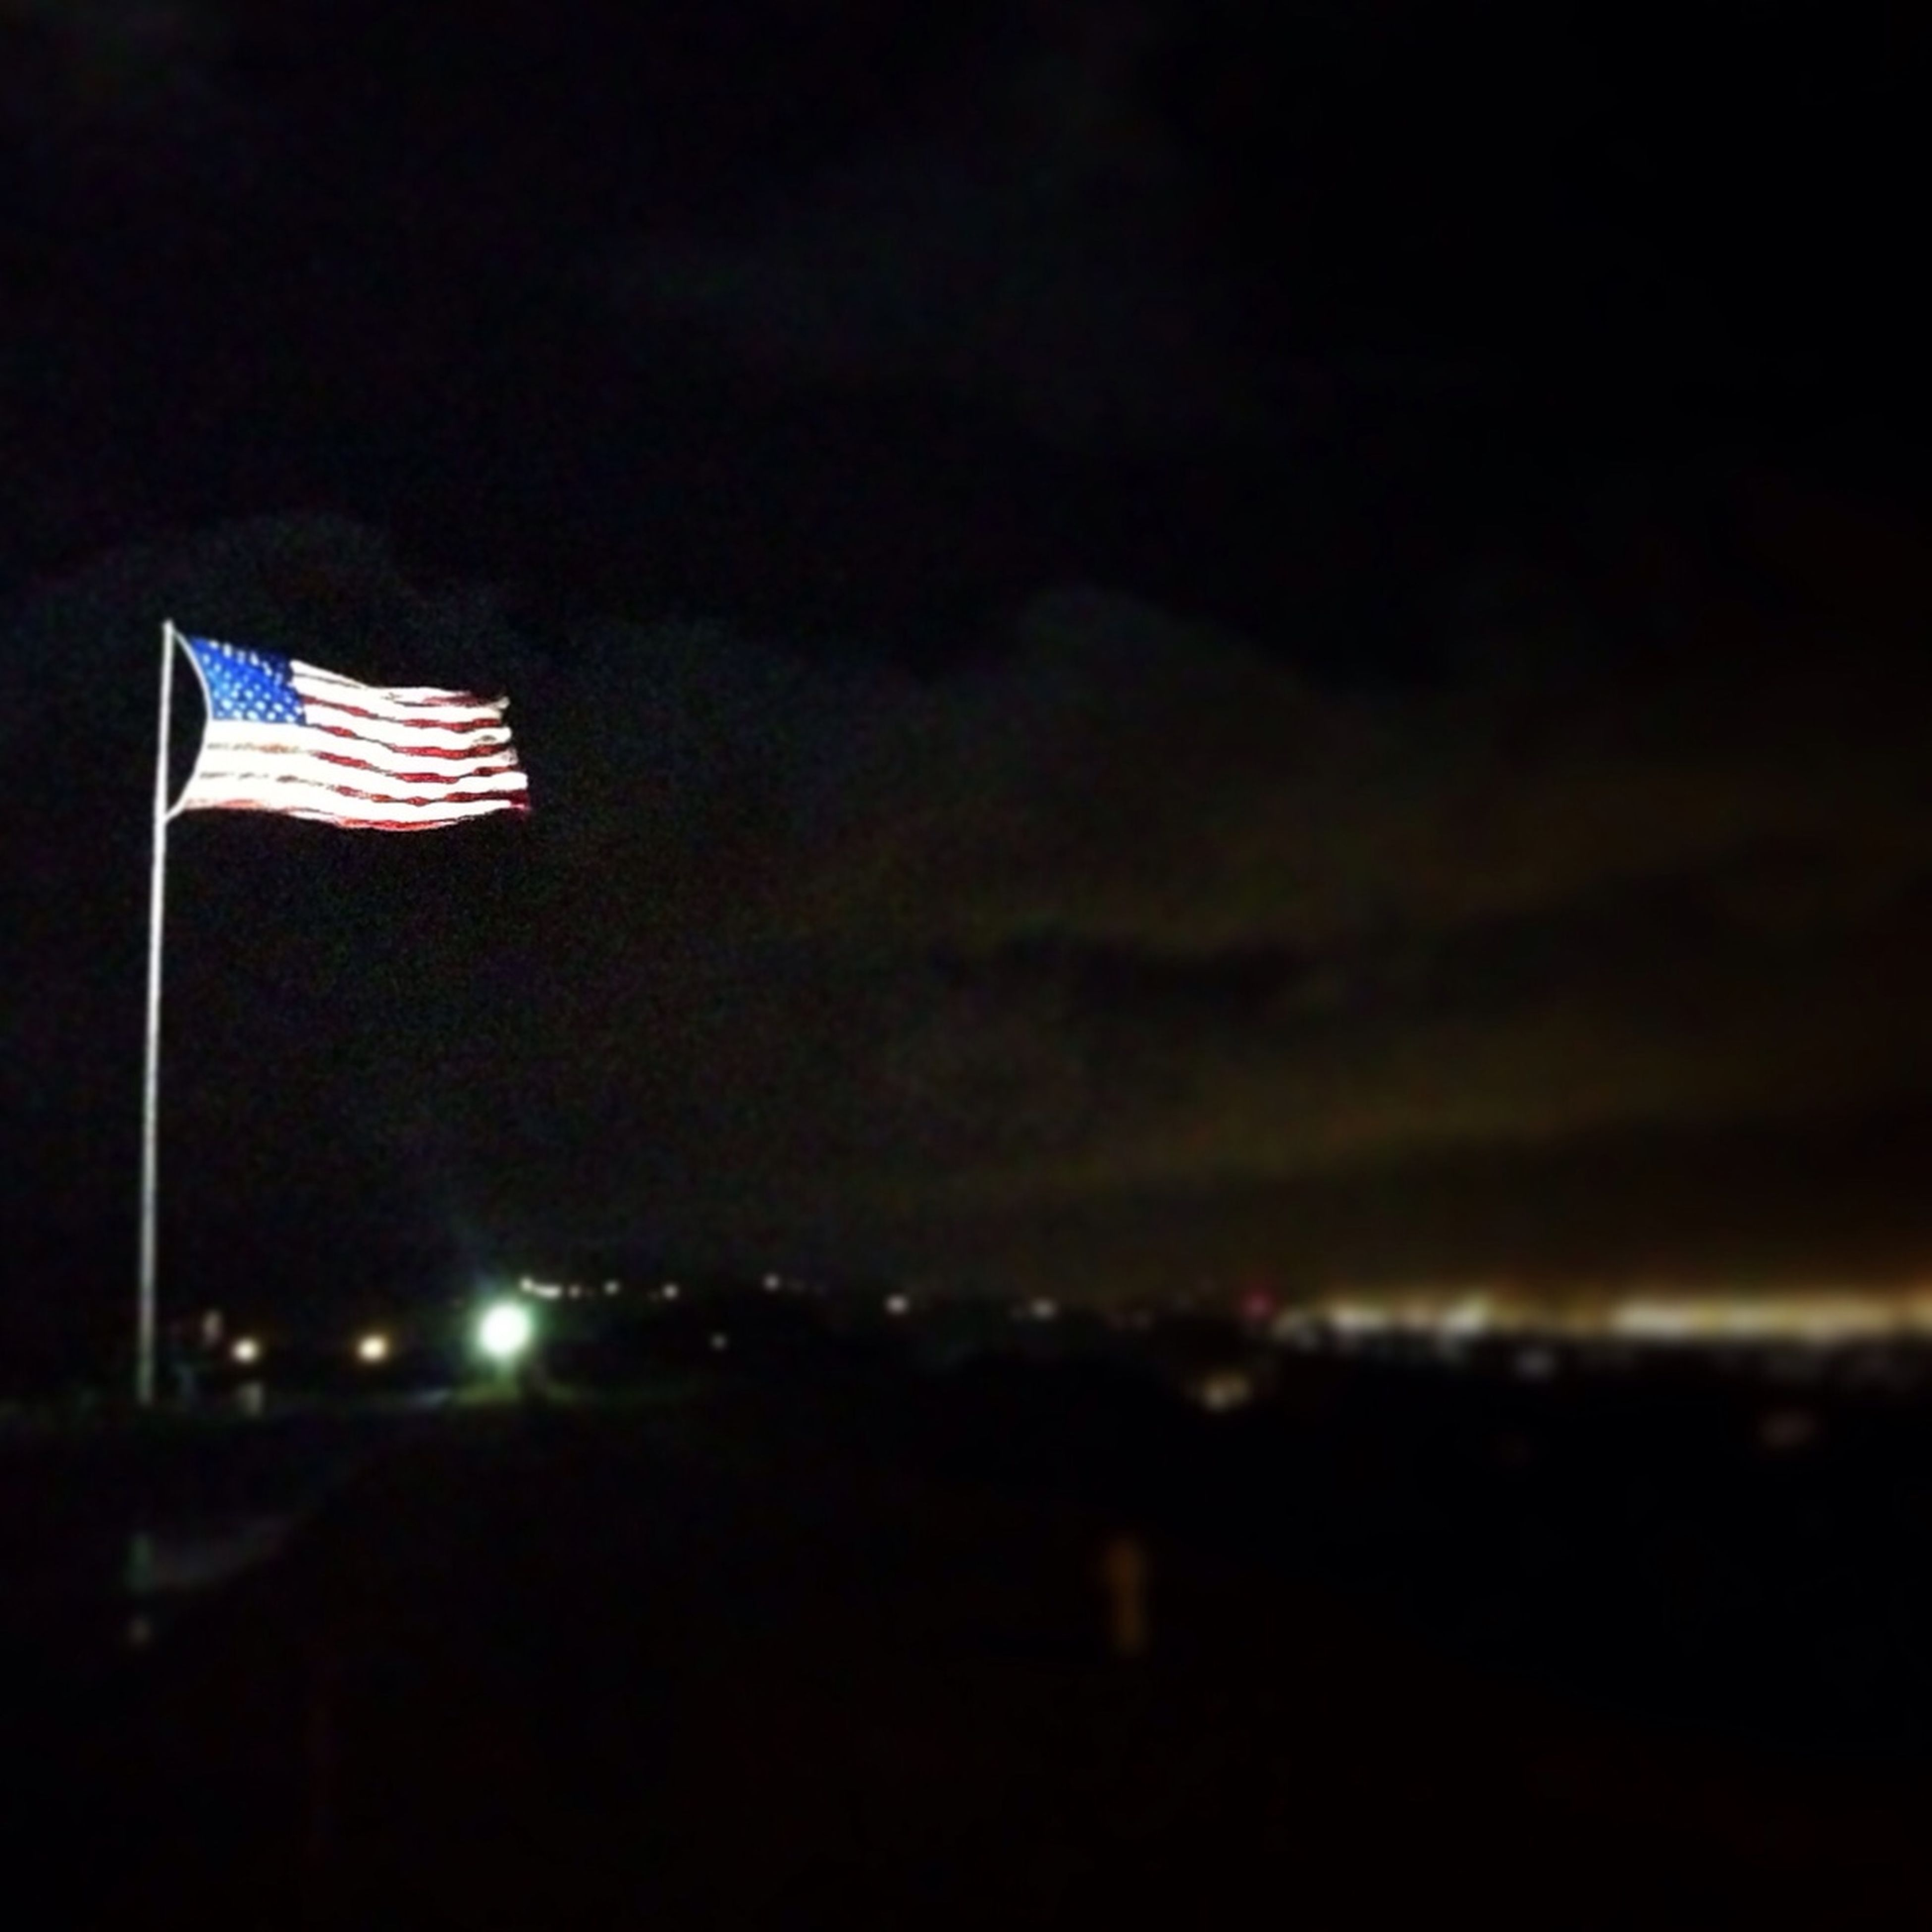 sky, flag, patriotism, identity, night, outdoors, cloud - sky, dusk, copy space, american flag, no people, red, low angle view, illuminated, cloud, nature, striped, building exterior, national flag, tranquility